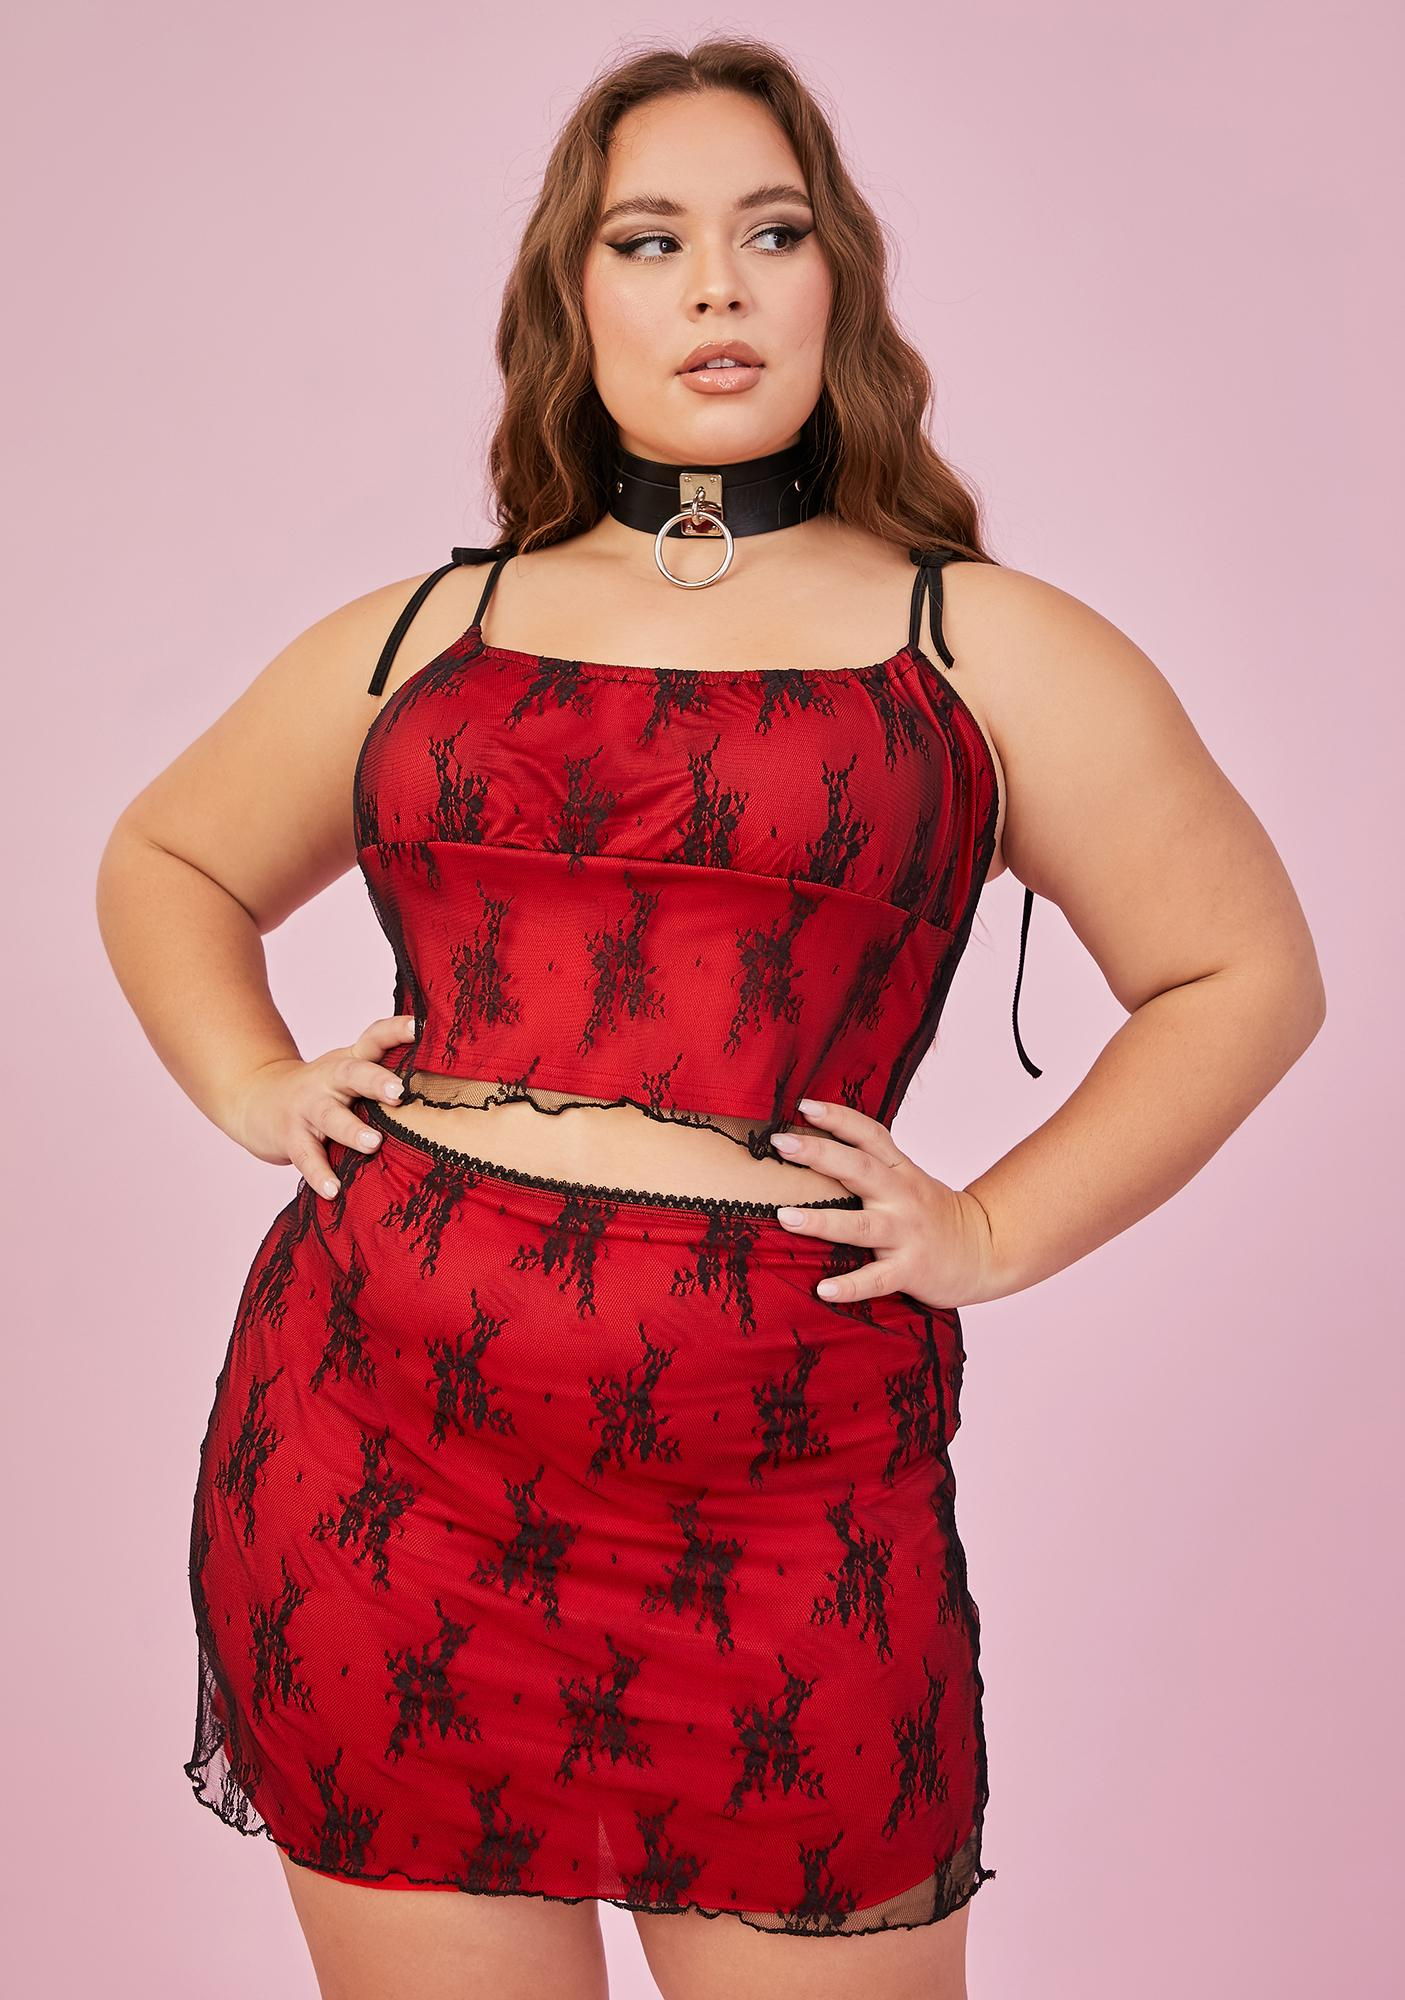 Sugar Thrillz Lover Let's Set The Mood Lace Skirt